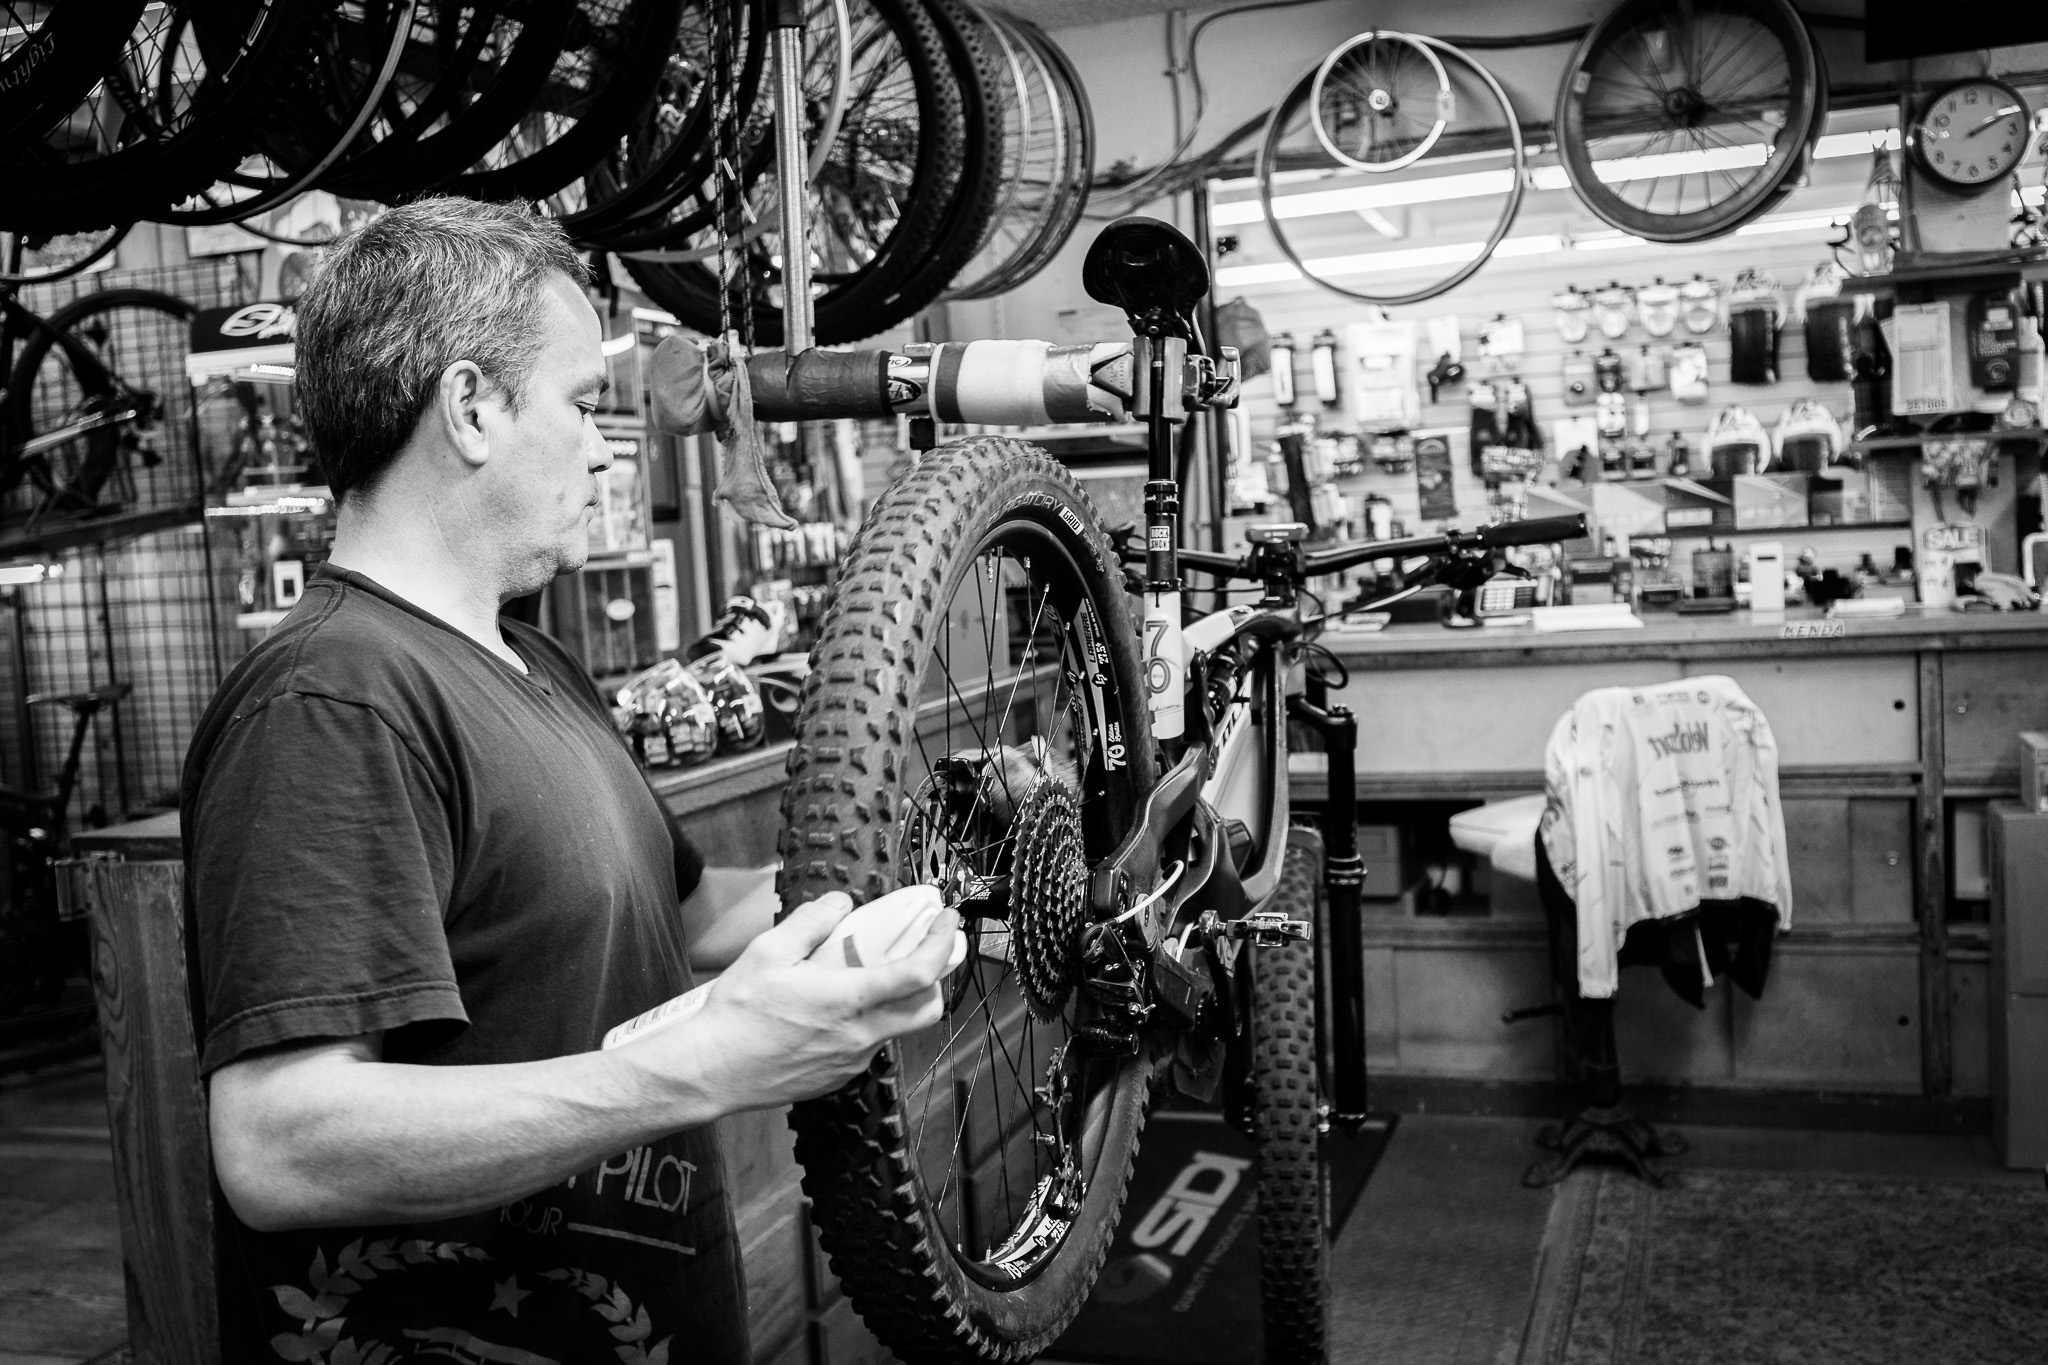 Terry in the shop